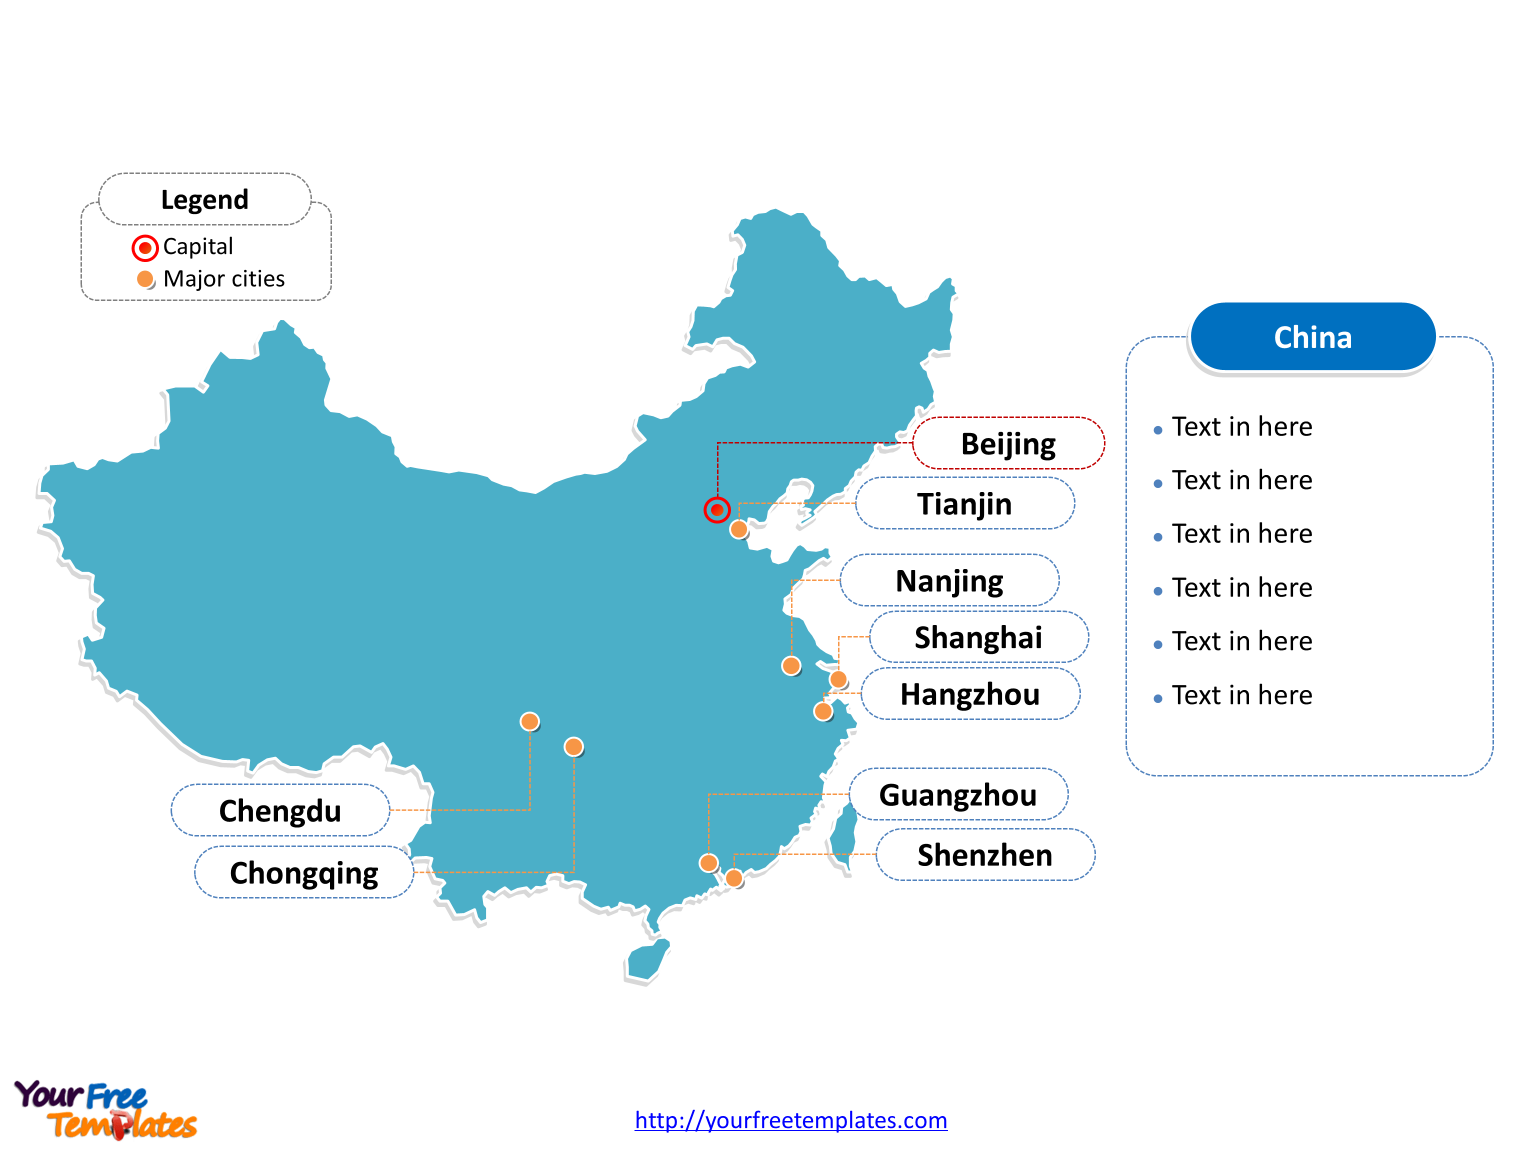 China map download free powerpoint templates map of china with outline and cities labeled on the china map download gumiabroncs Image collections